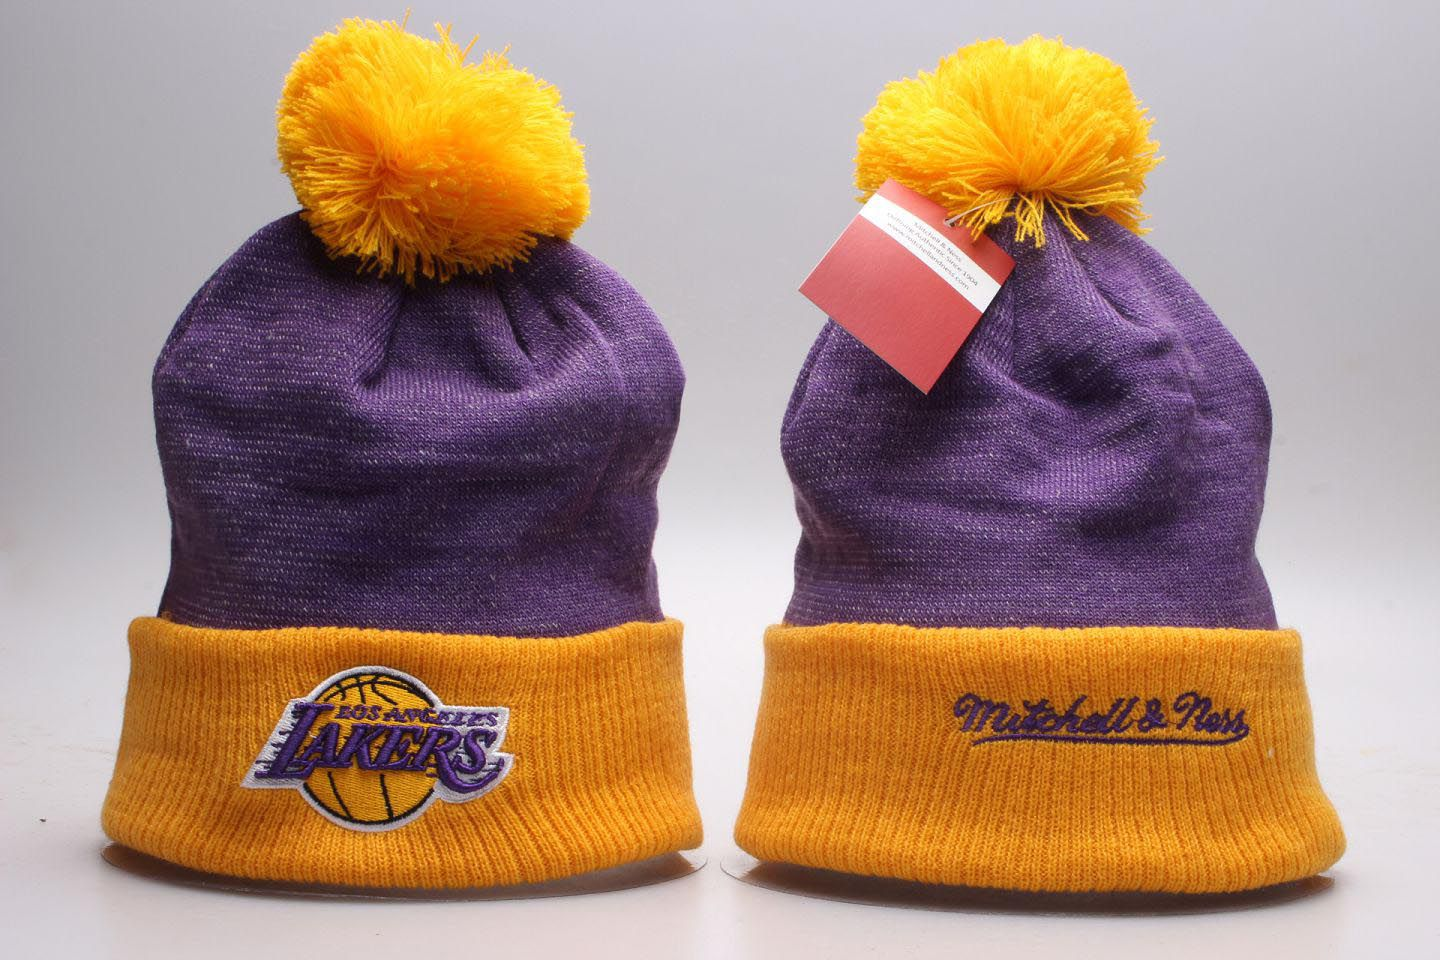 NBA Los Angeles Lakers Beanie hot hat